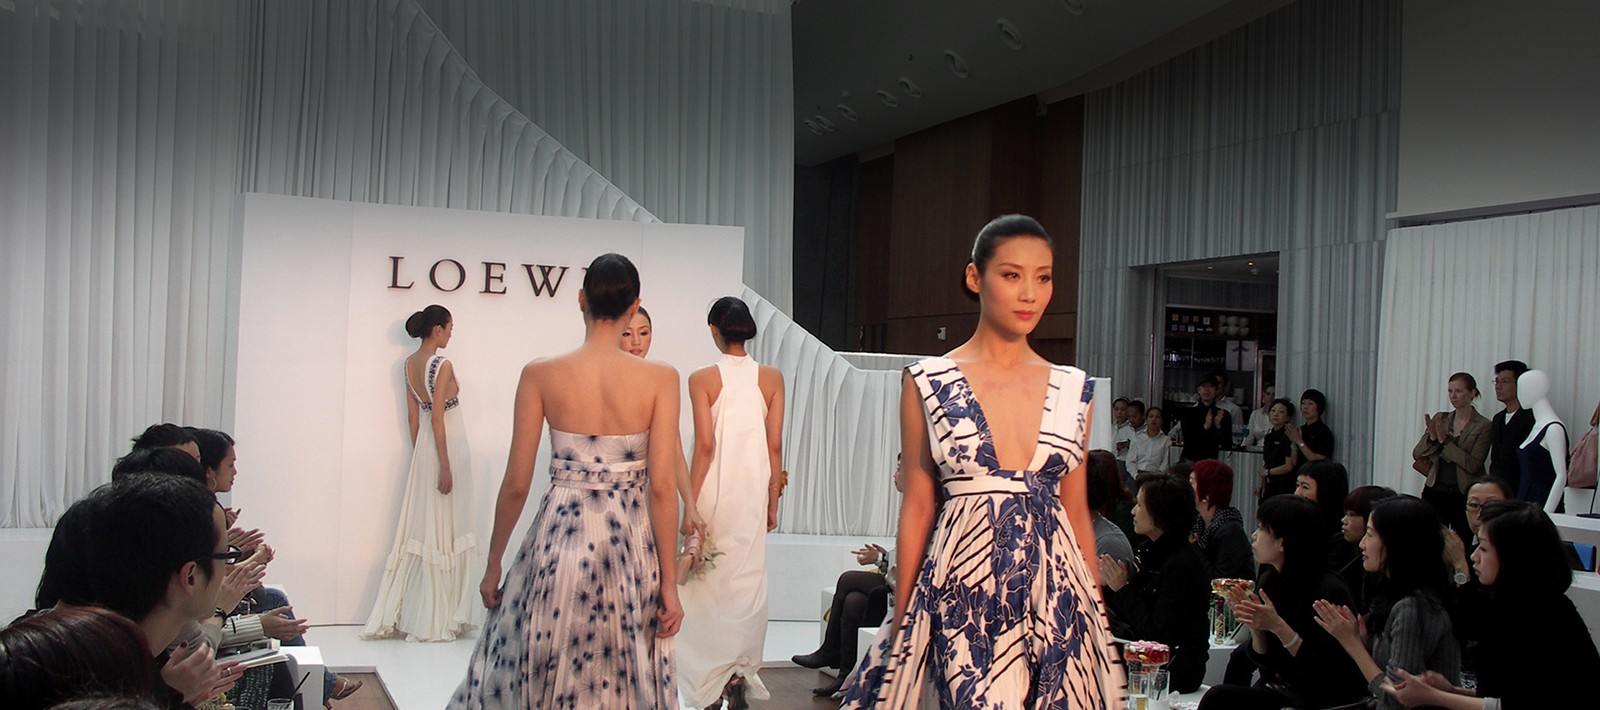 Event management for Loewe